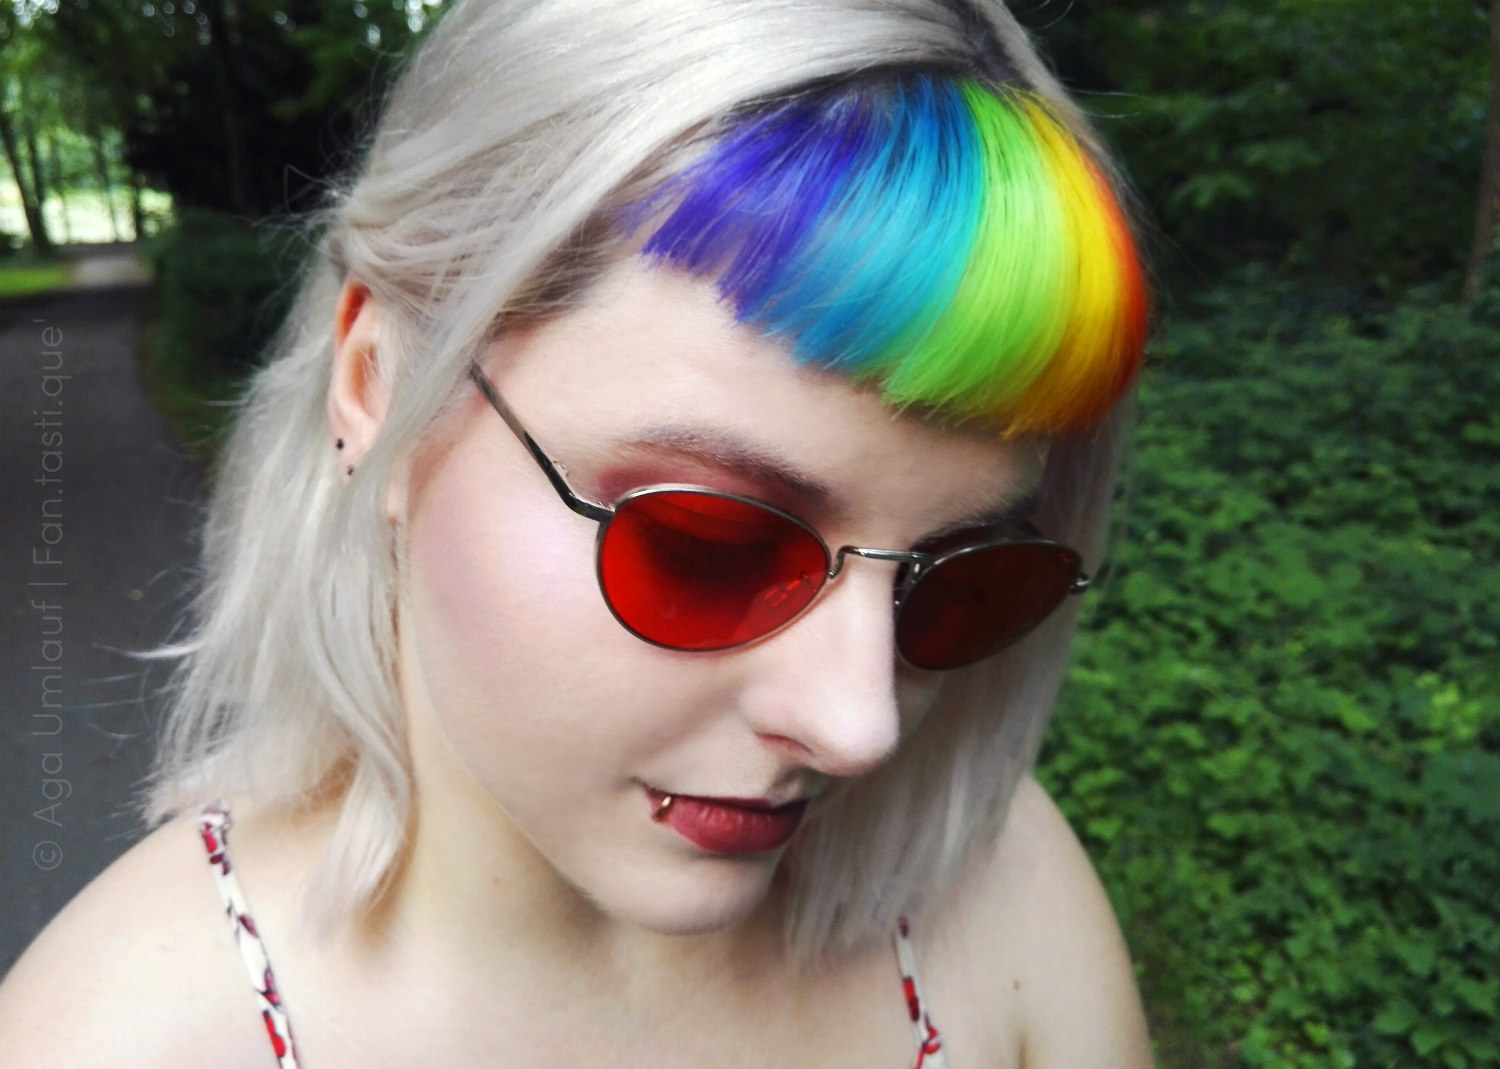 the face of a blonde white woman wearing red sunglasses with vertically rainbow colored bangs, standing in a forest